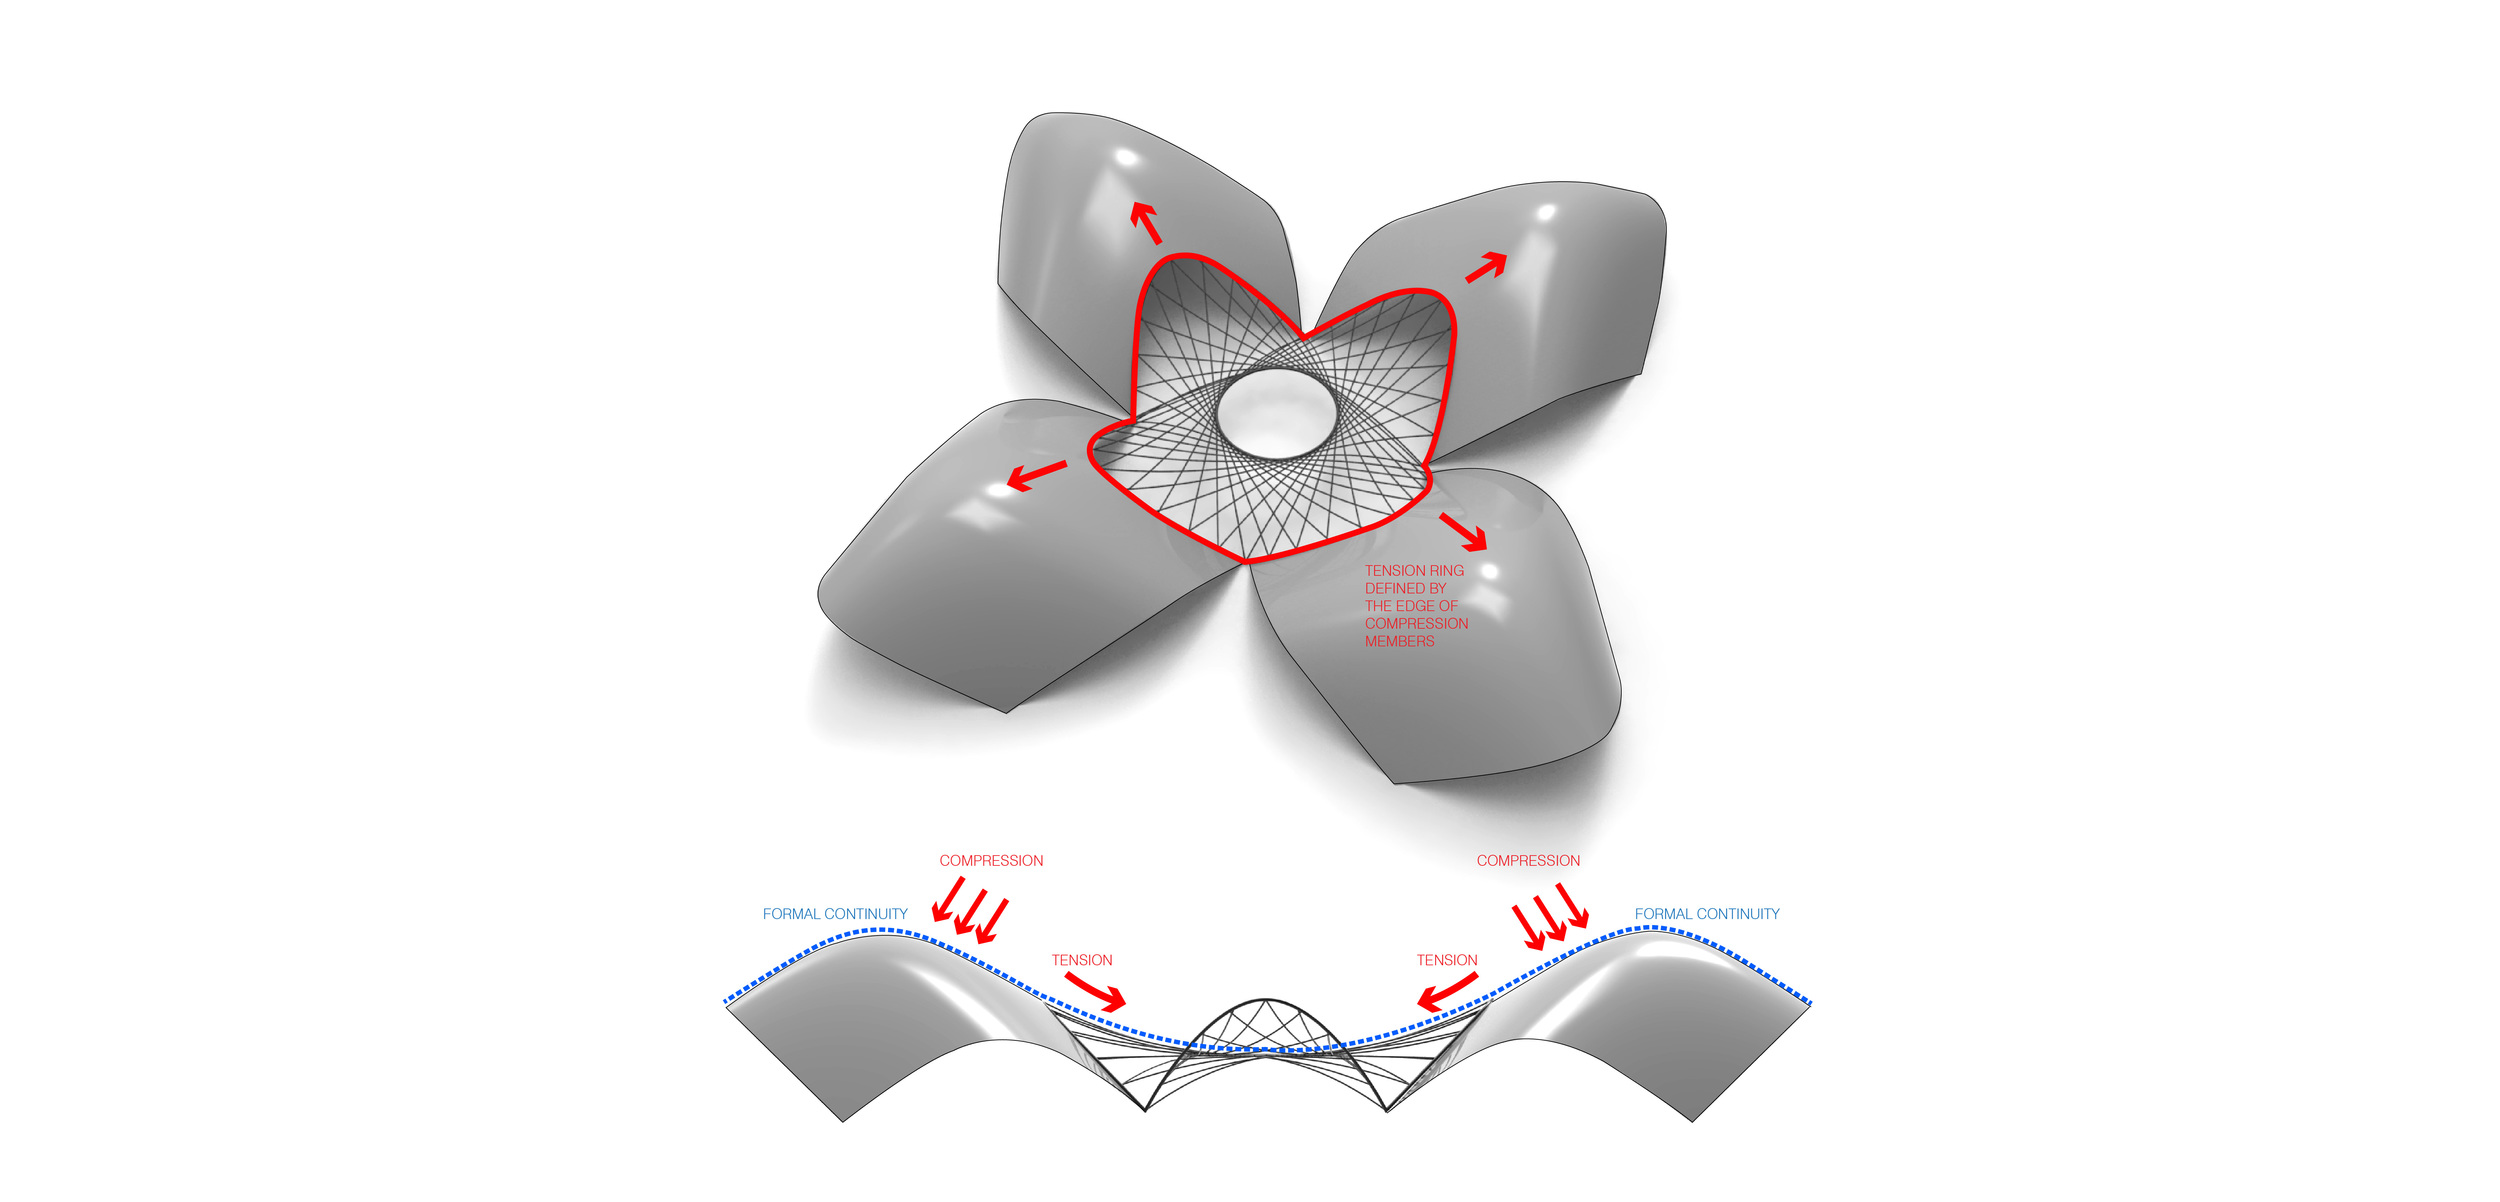 The singular unit is comprised of a hybridised system of compression and tensile members. The tensile members are centrally located resolving into multiple inner rings under which key program is positioned. At the perimeter, the compression shells perform as the outer ring for the tensile member while preserving a formal continuity between the two parts.